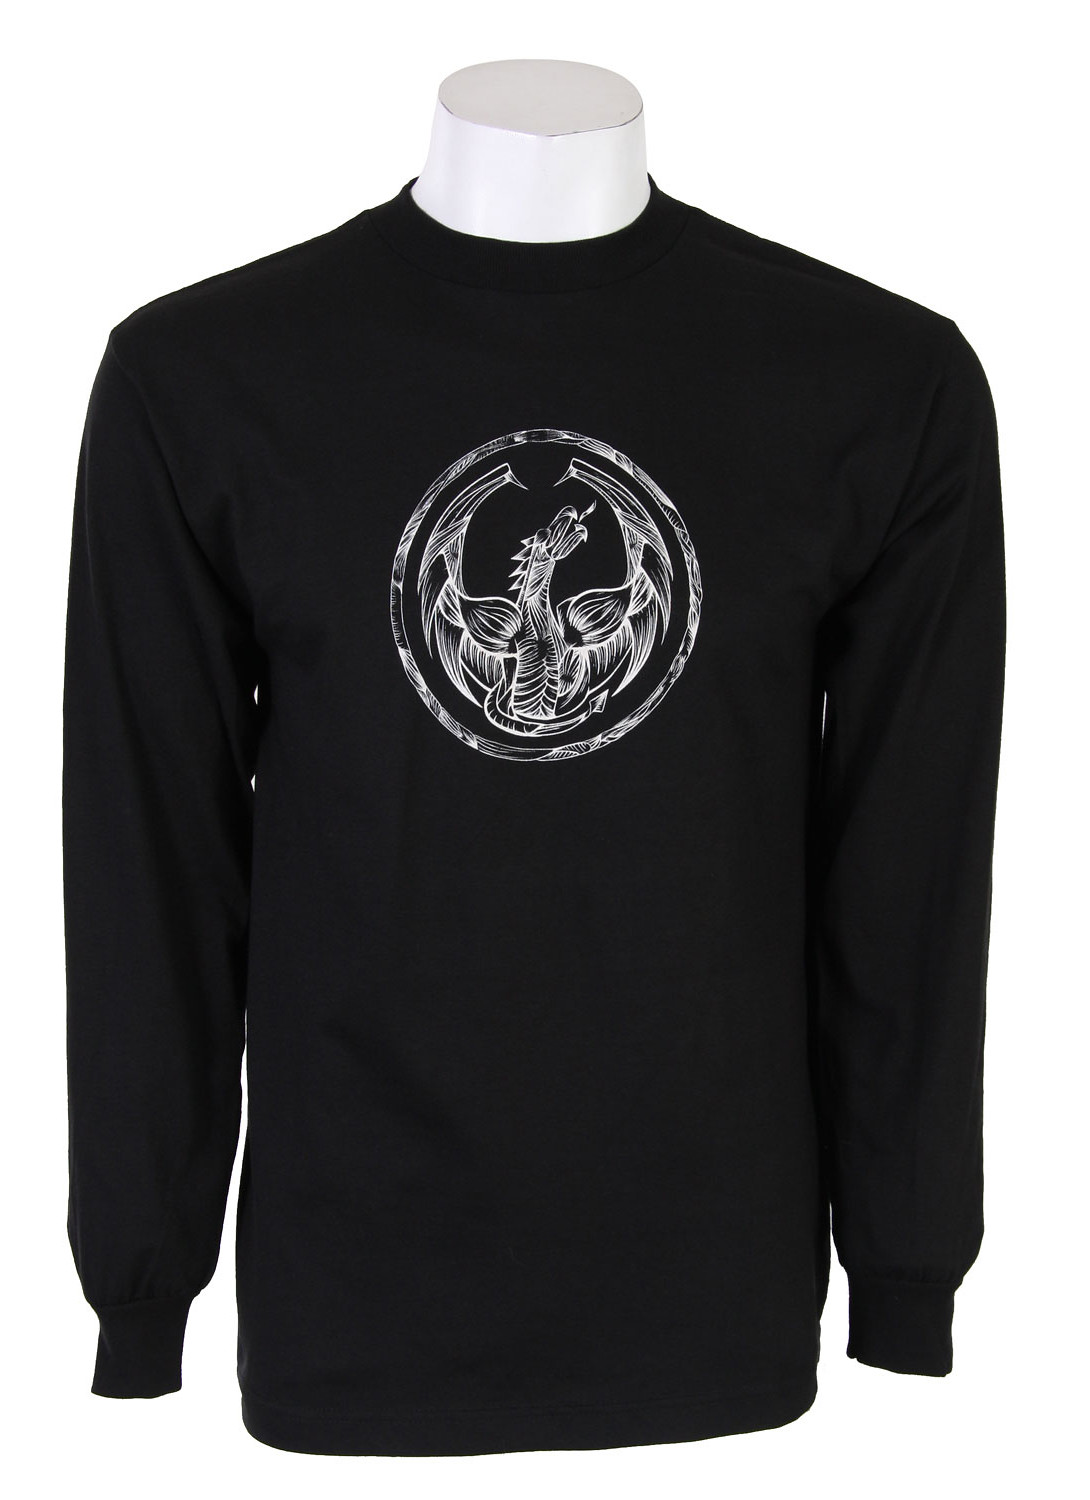 Dragon Tendons L/S T-Shirt Shirt Black  dragon-tendons-ls-blk-10.jpg